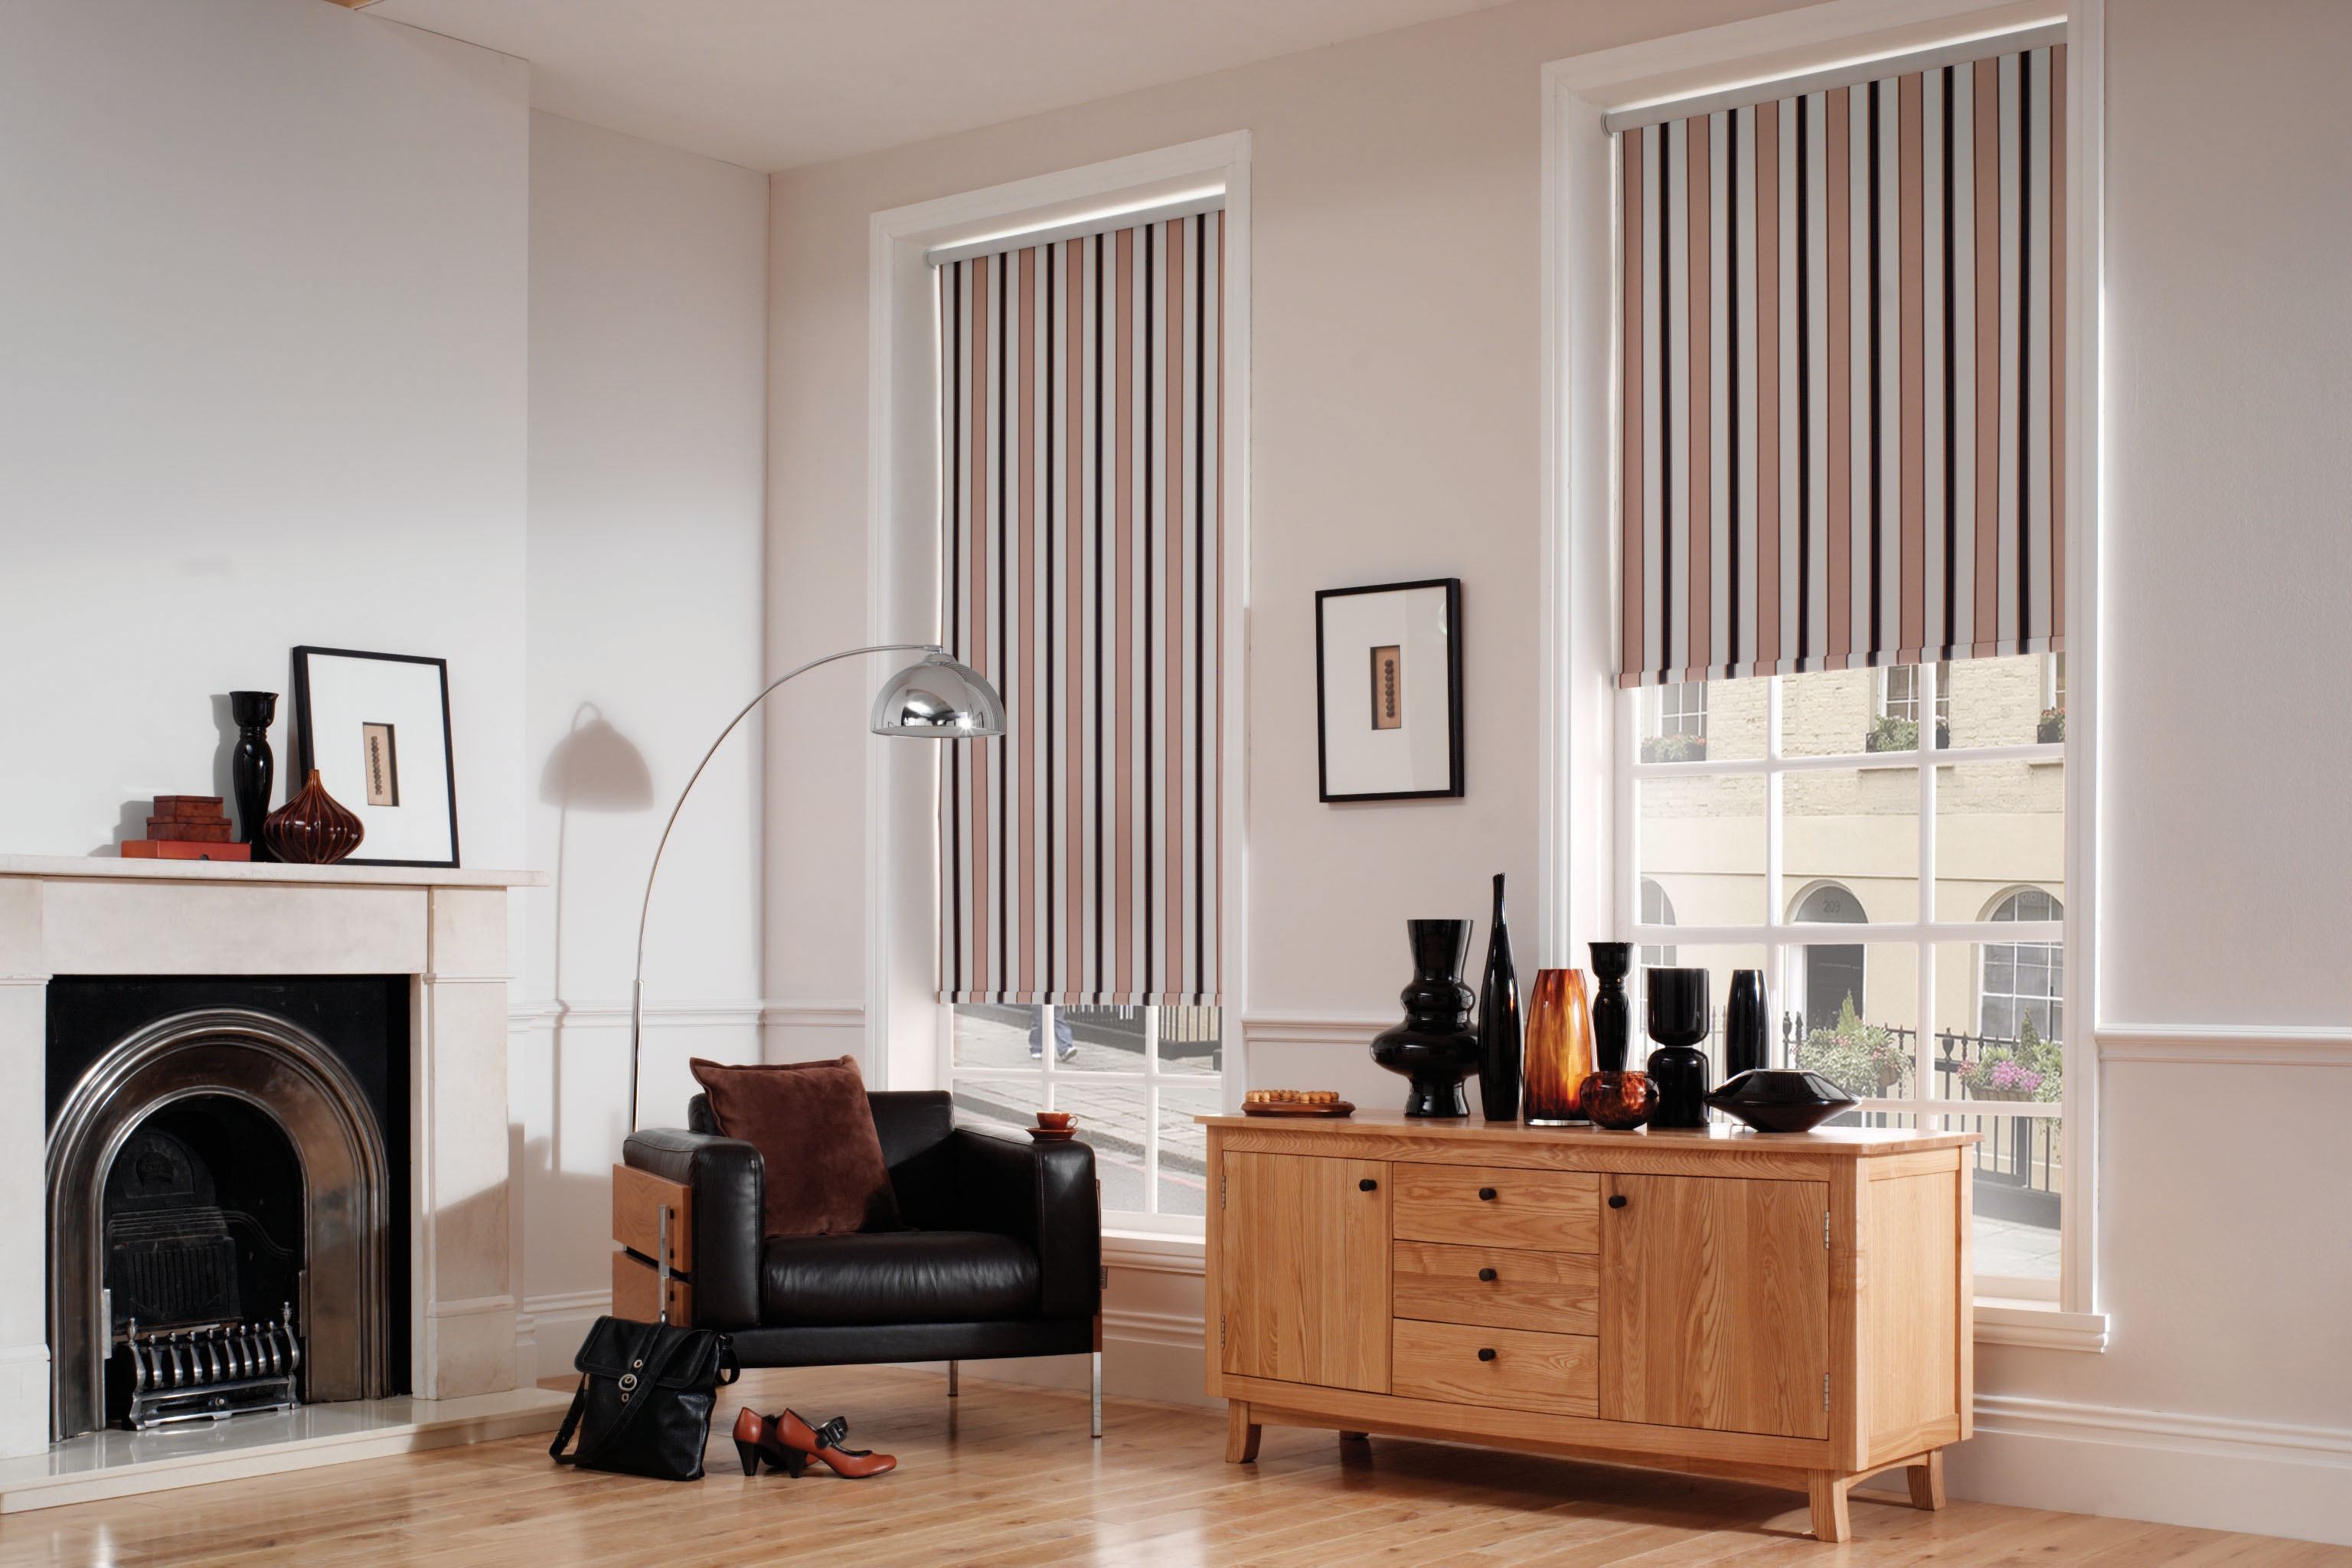 Inside Out Blinds Blinds Luton Blackout Blinds Luton Blind Regarding Luxury Roman Blinds (Image 8 of 15)